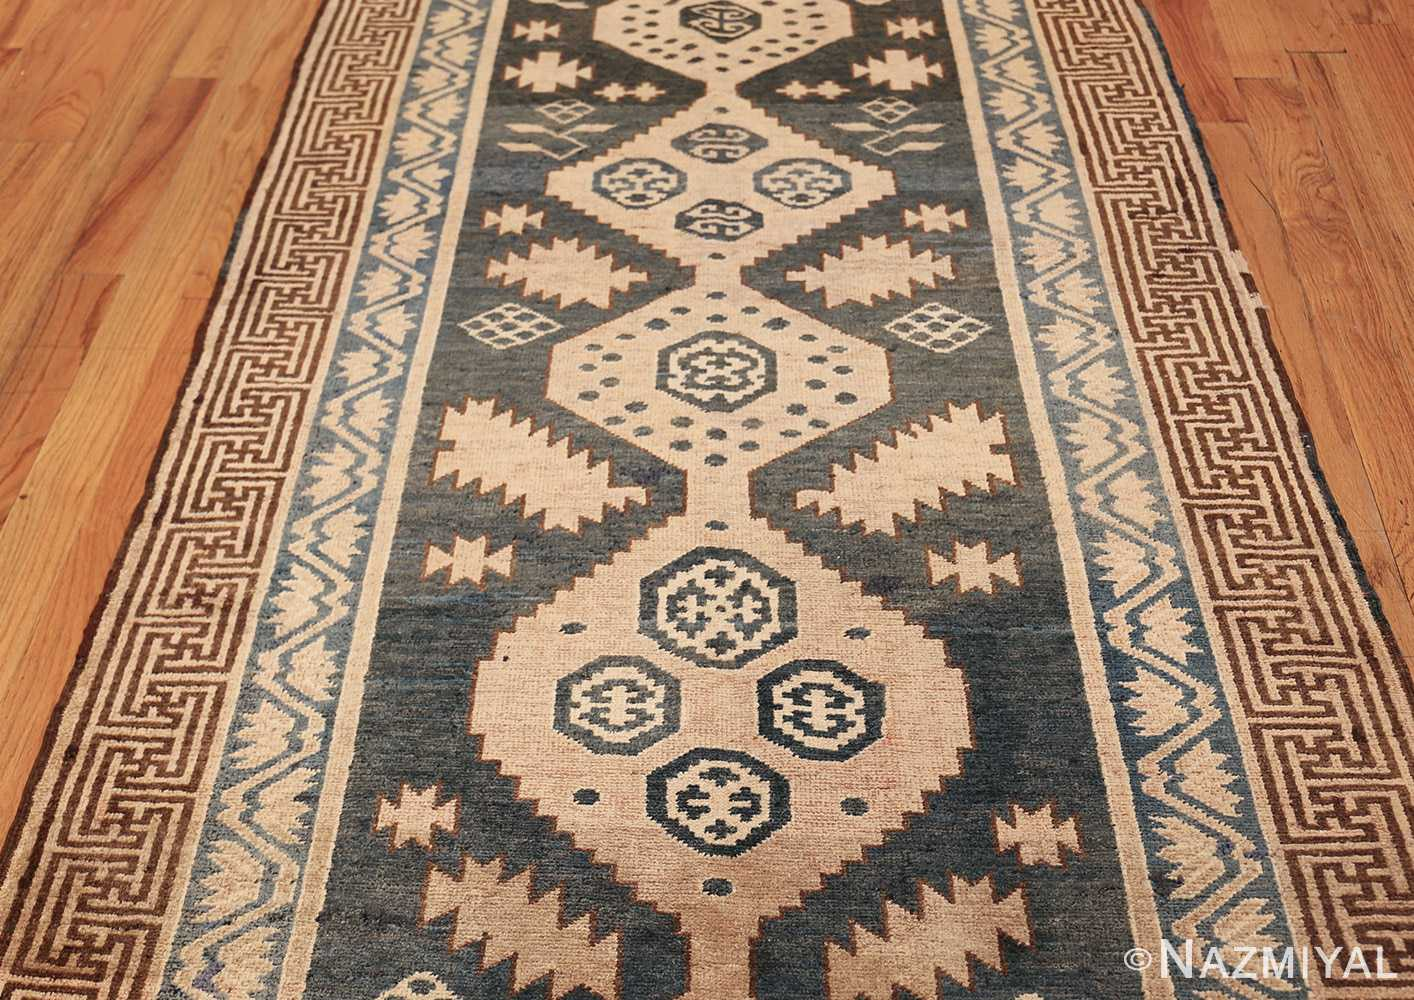 antique khotan carpet 47250 field Nazmiyal